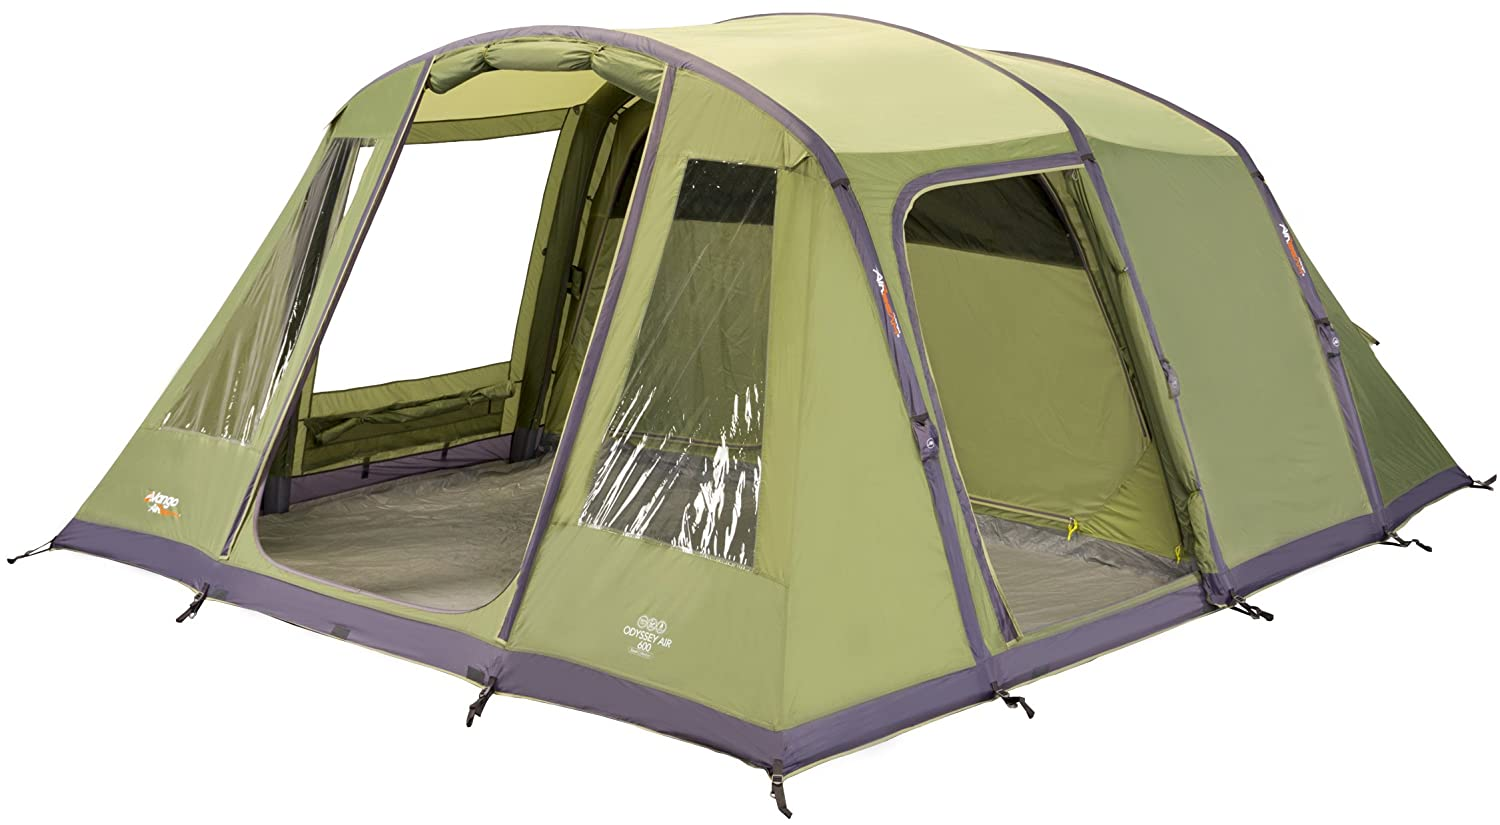 Vango Odyssey Inflatable Family Tunnel Tent Epsom Green Airbeam 600 Amazon.co.uk Sports u0026 Outdoors  sc 1 st  Amazon UK & Vango Odyssey Inflatable Family Tunnel Tent Epsom Green Airbeam ...